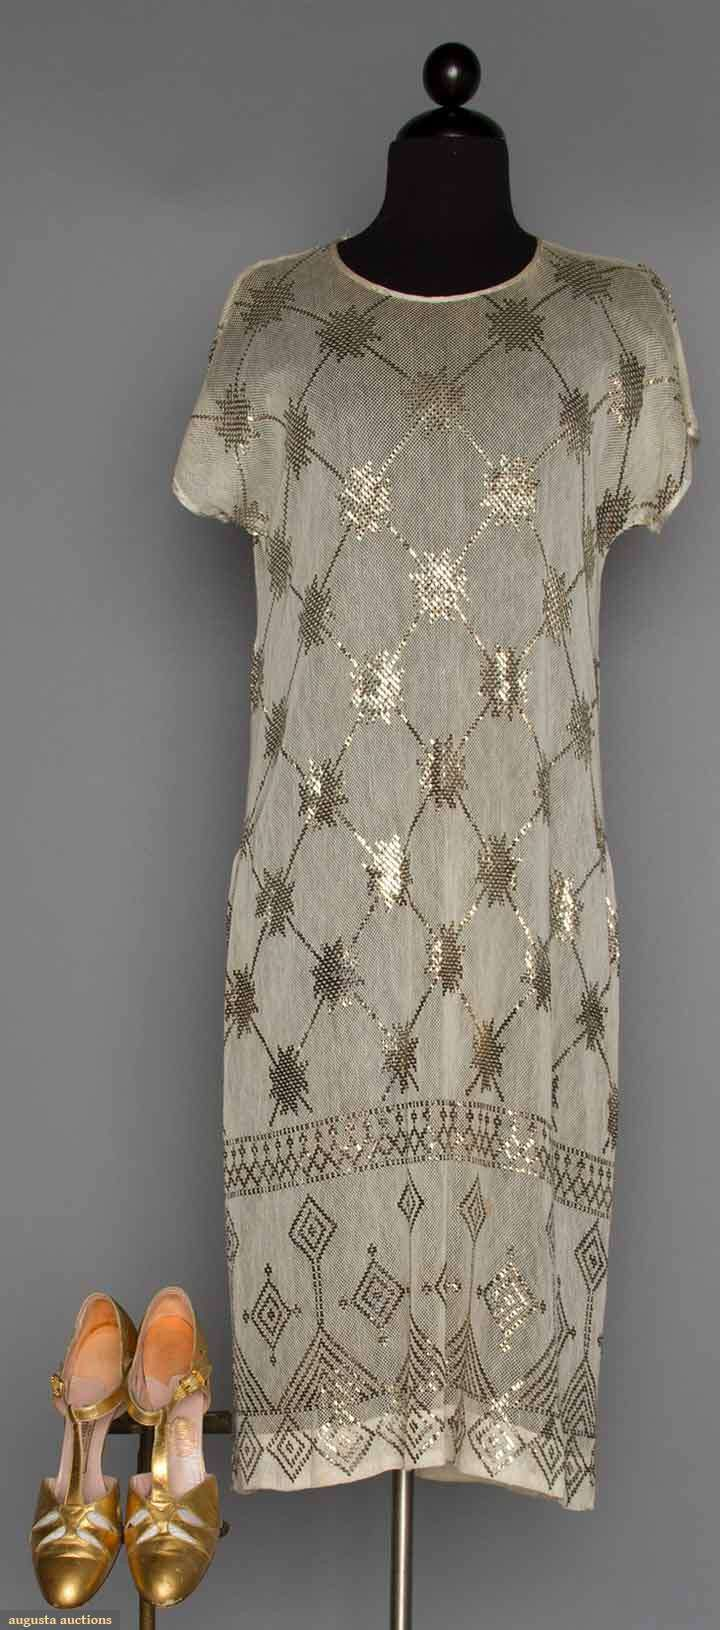 1920s Dress & Gold Shoes White net, lattice patterned metal work Gold Leather T-strap evening shoes Front 1